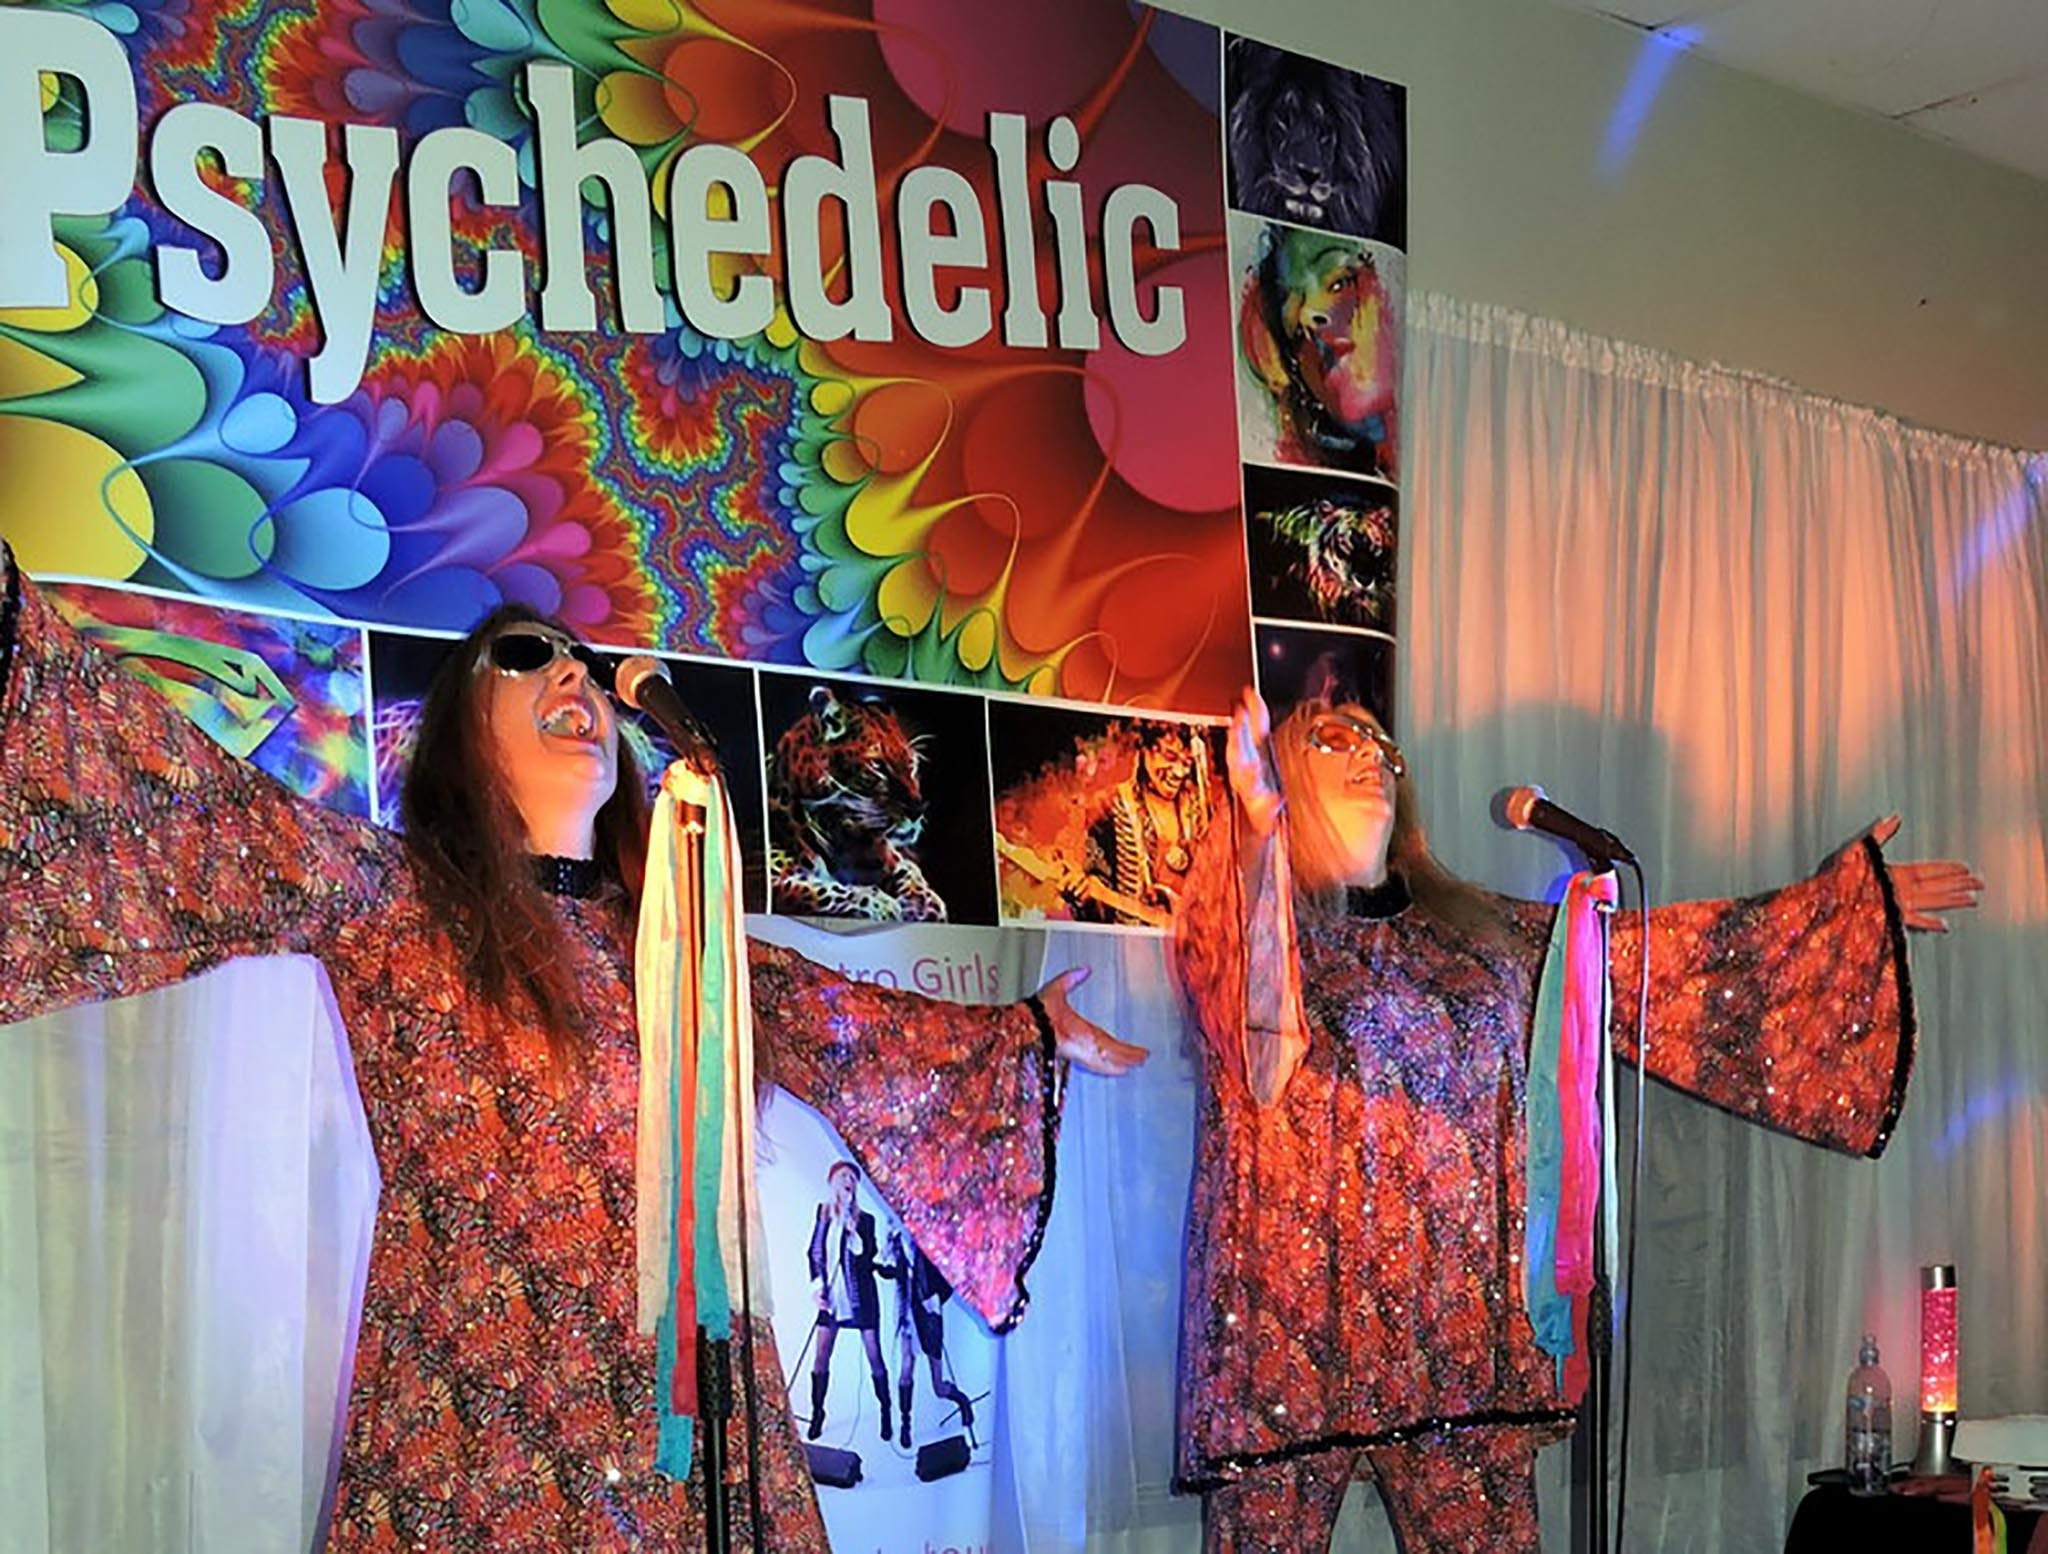 Psychedelic 70s Show The Retro Girls - Sydney Tourism